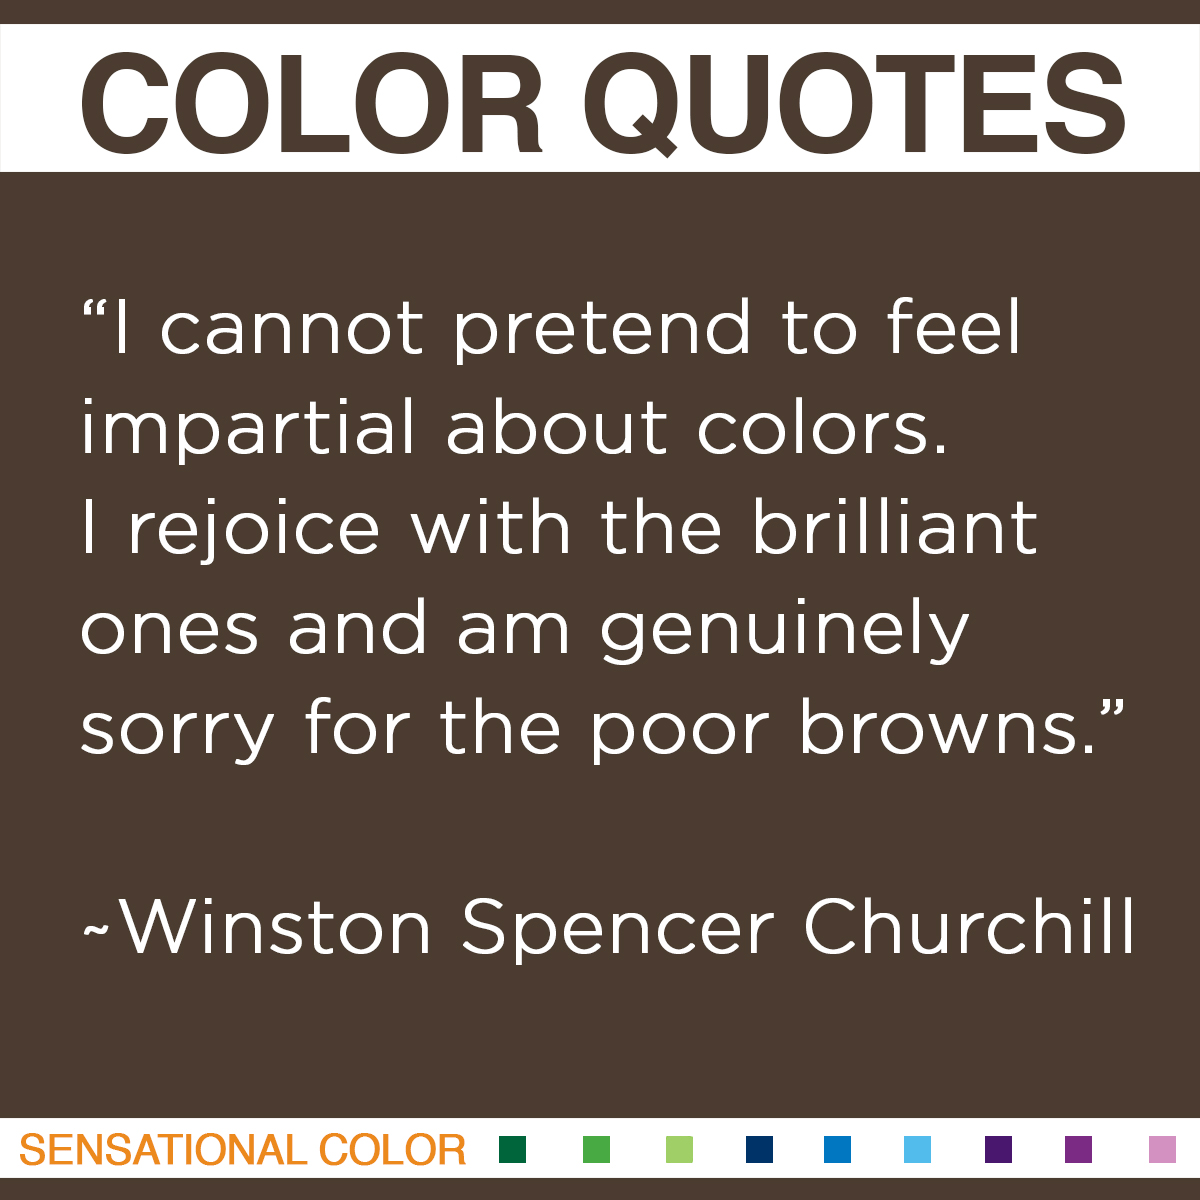 """Quotes About Color - """"I cannot pretend to feel impartial about colors. I rejoice with the brilliant ones and am genuinely sorry for the poor browns."""" ~ Winston Spencer Churchill"""